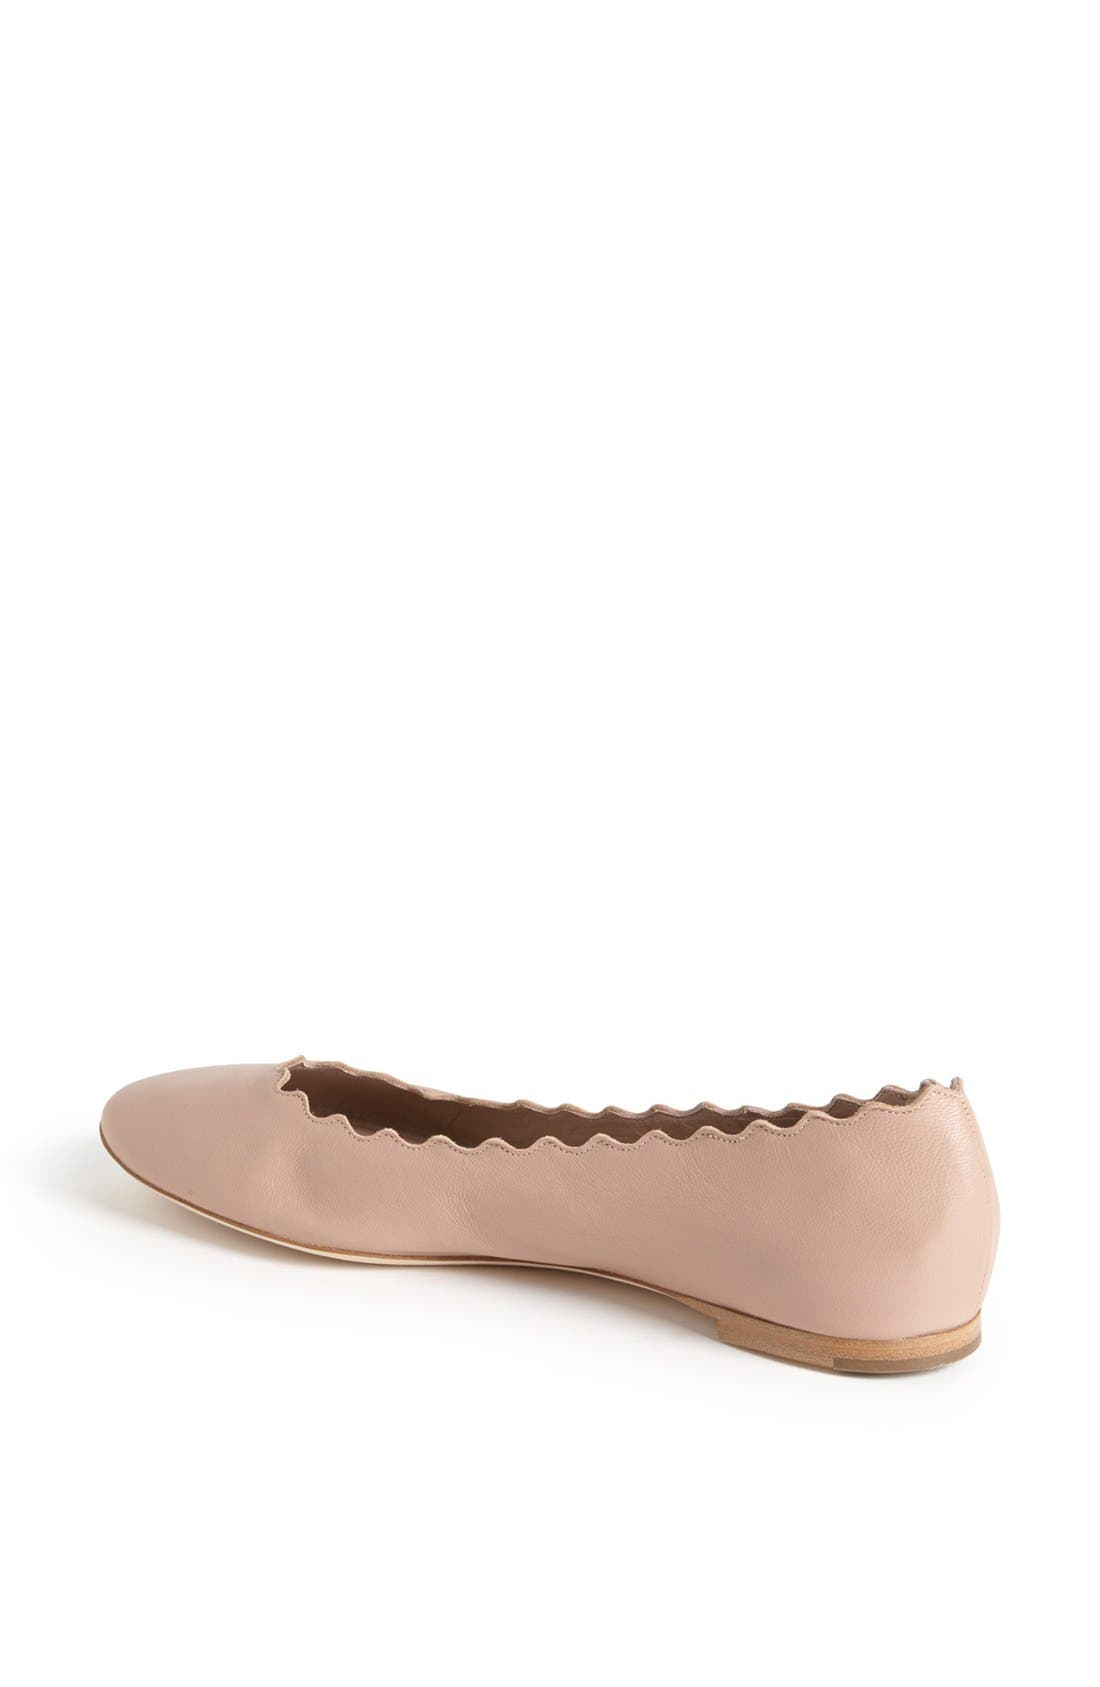 'Lauren' Scalloped Ballet Flat,                             Alternate thumbnail 2, color,                             Taupe